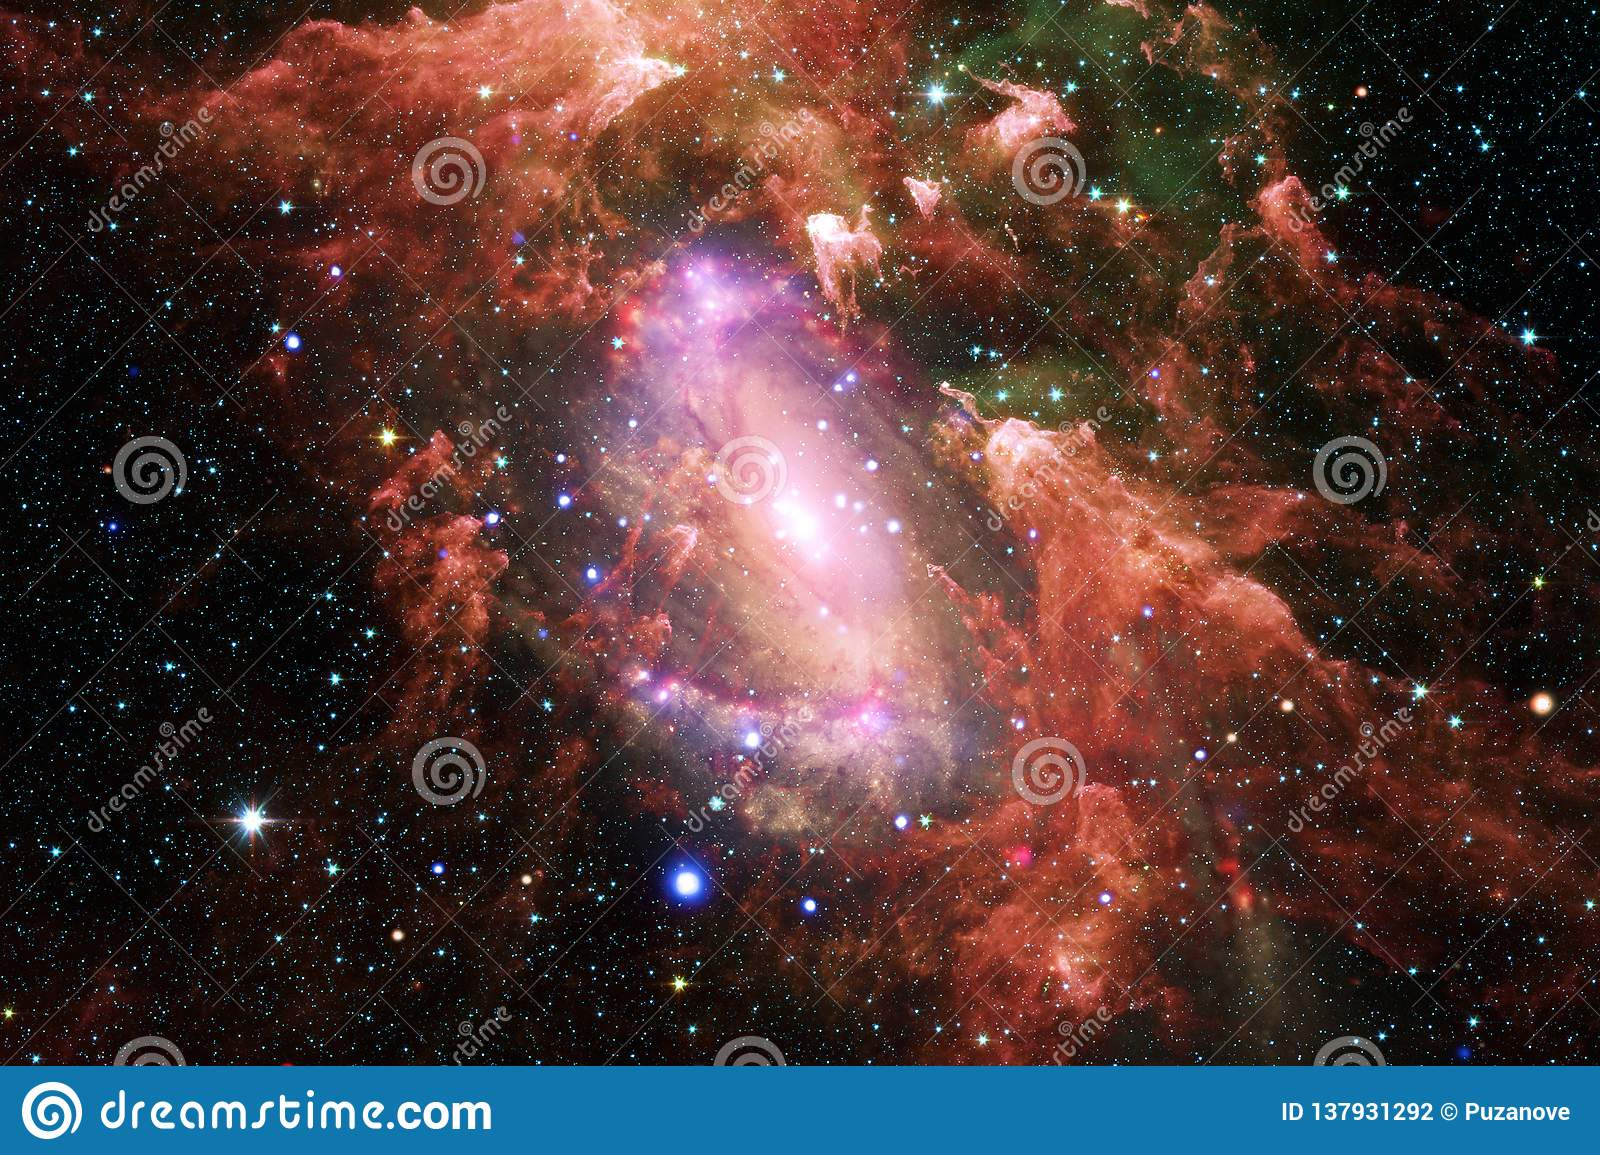 Beautiful nebula, starfield, cluster of stars in outer space